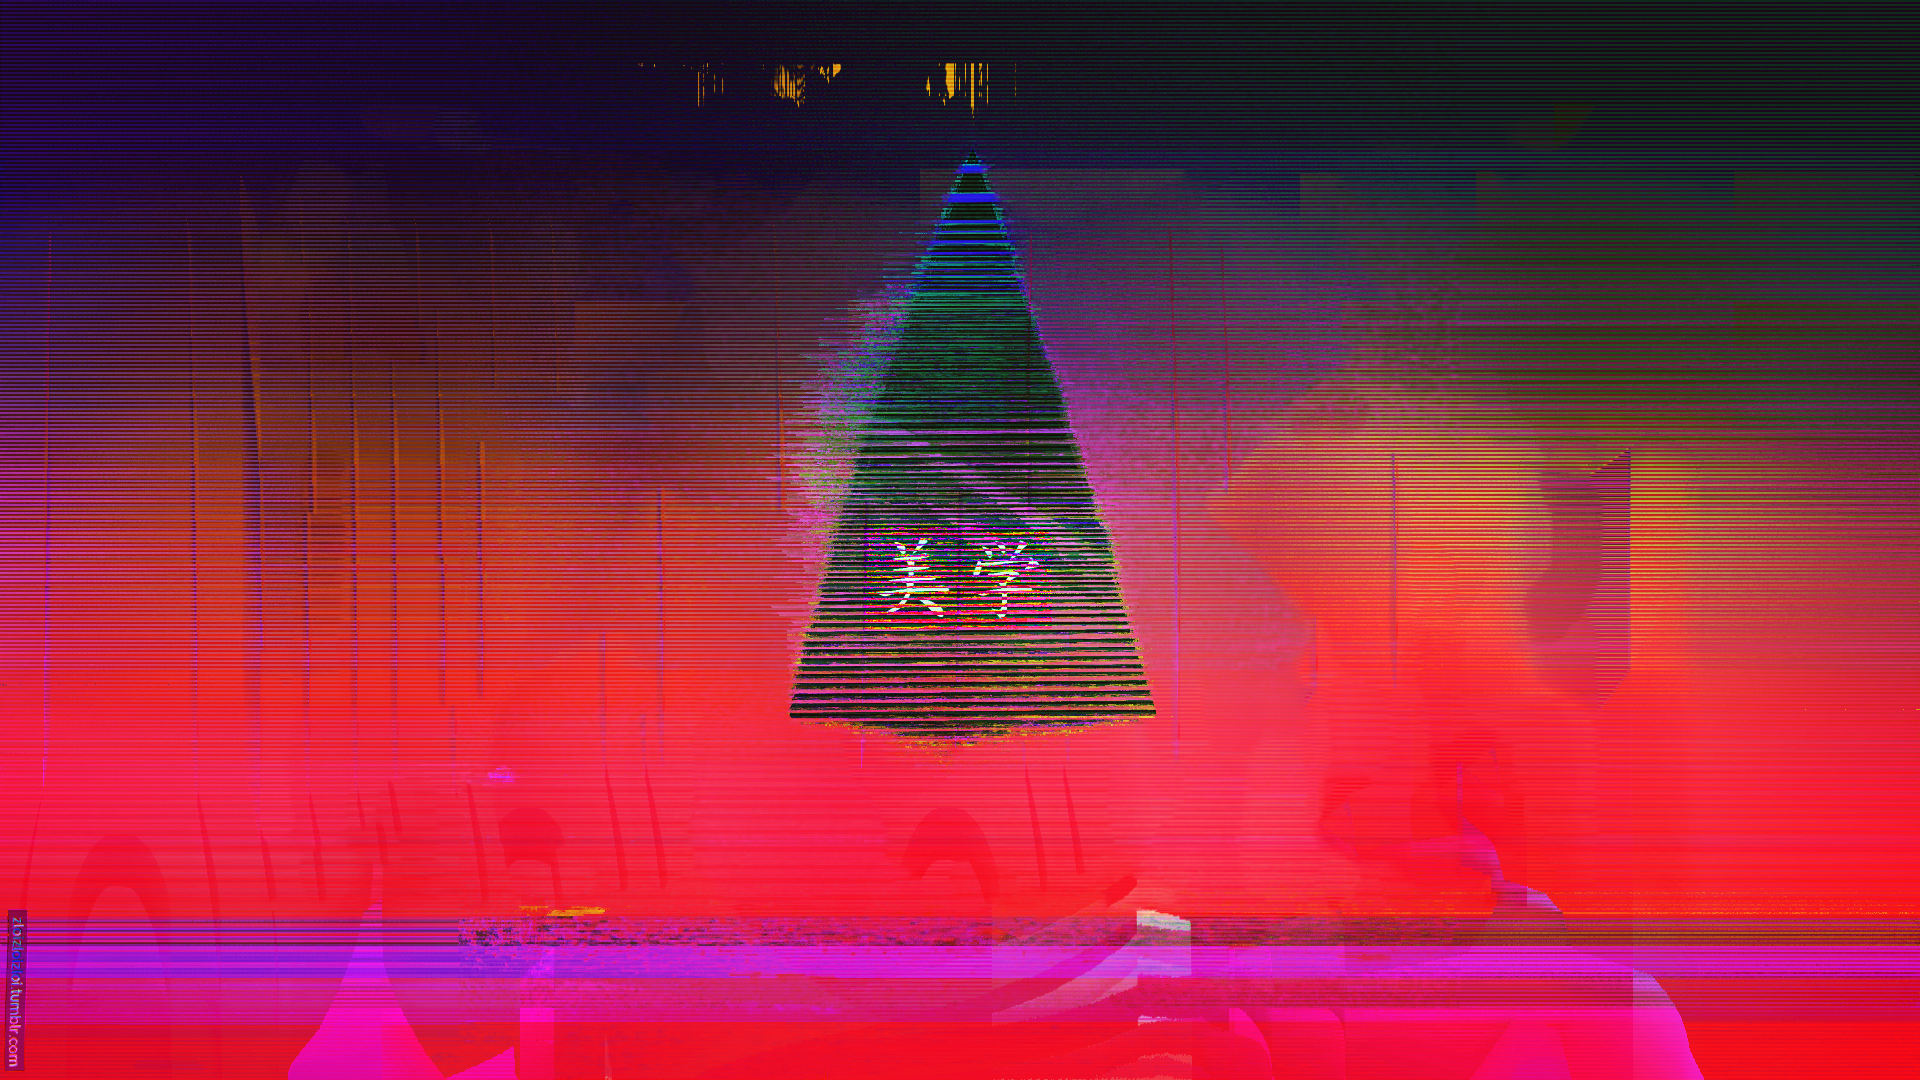 Glitch Neon Aesthetic Japan Triangle Abstract [1920x1080] wallpapers 1920x1080